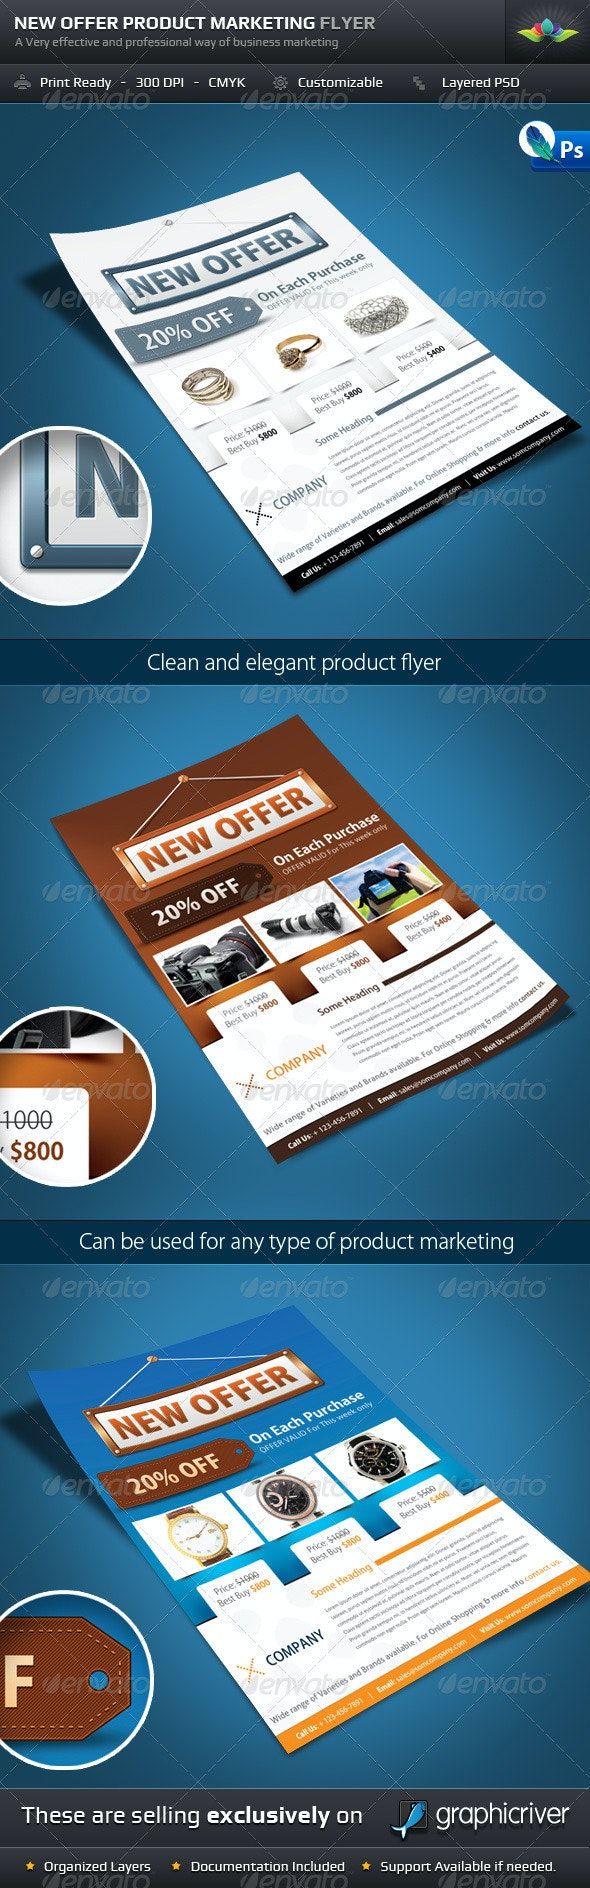 New Offer Product Marketing Flyer - Corporate Flyers